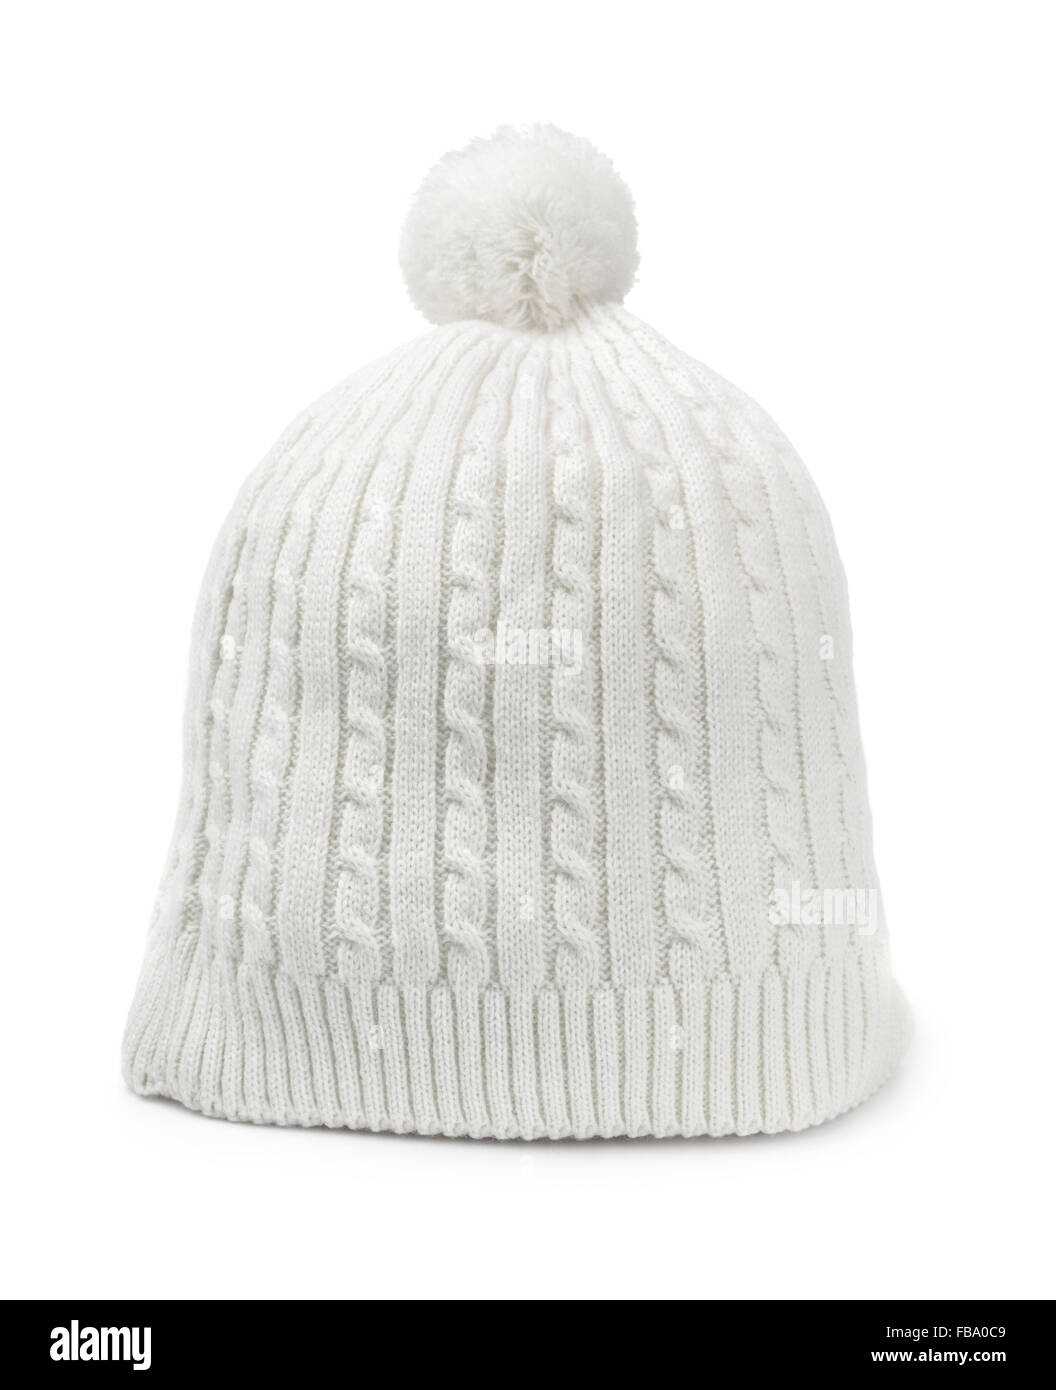 White woolen knitted hat isolated on white - Stock Image